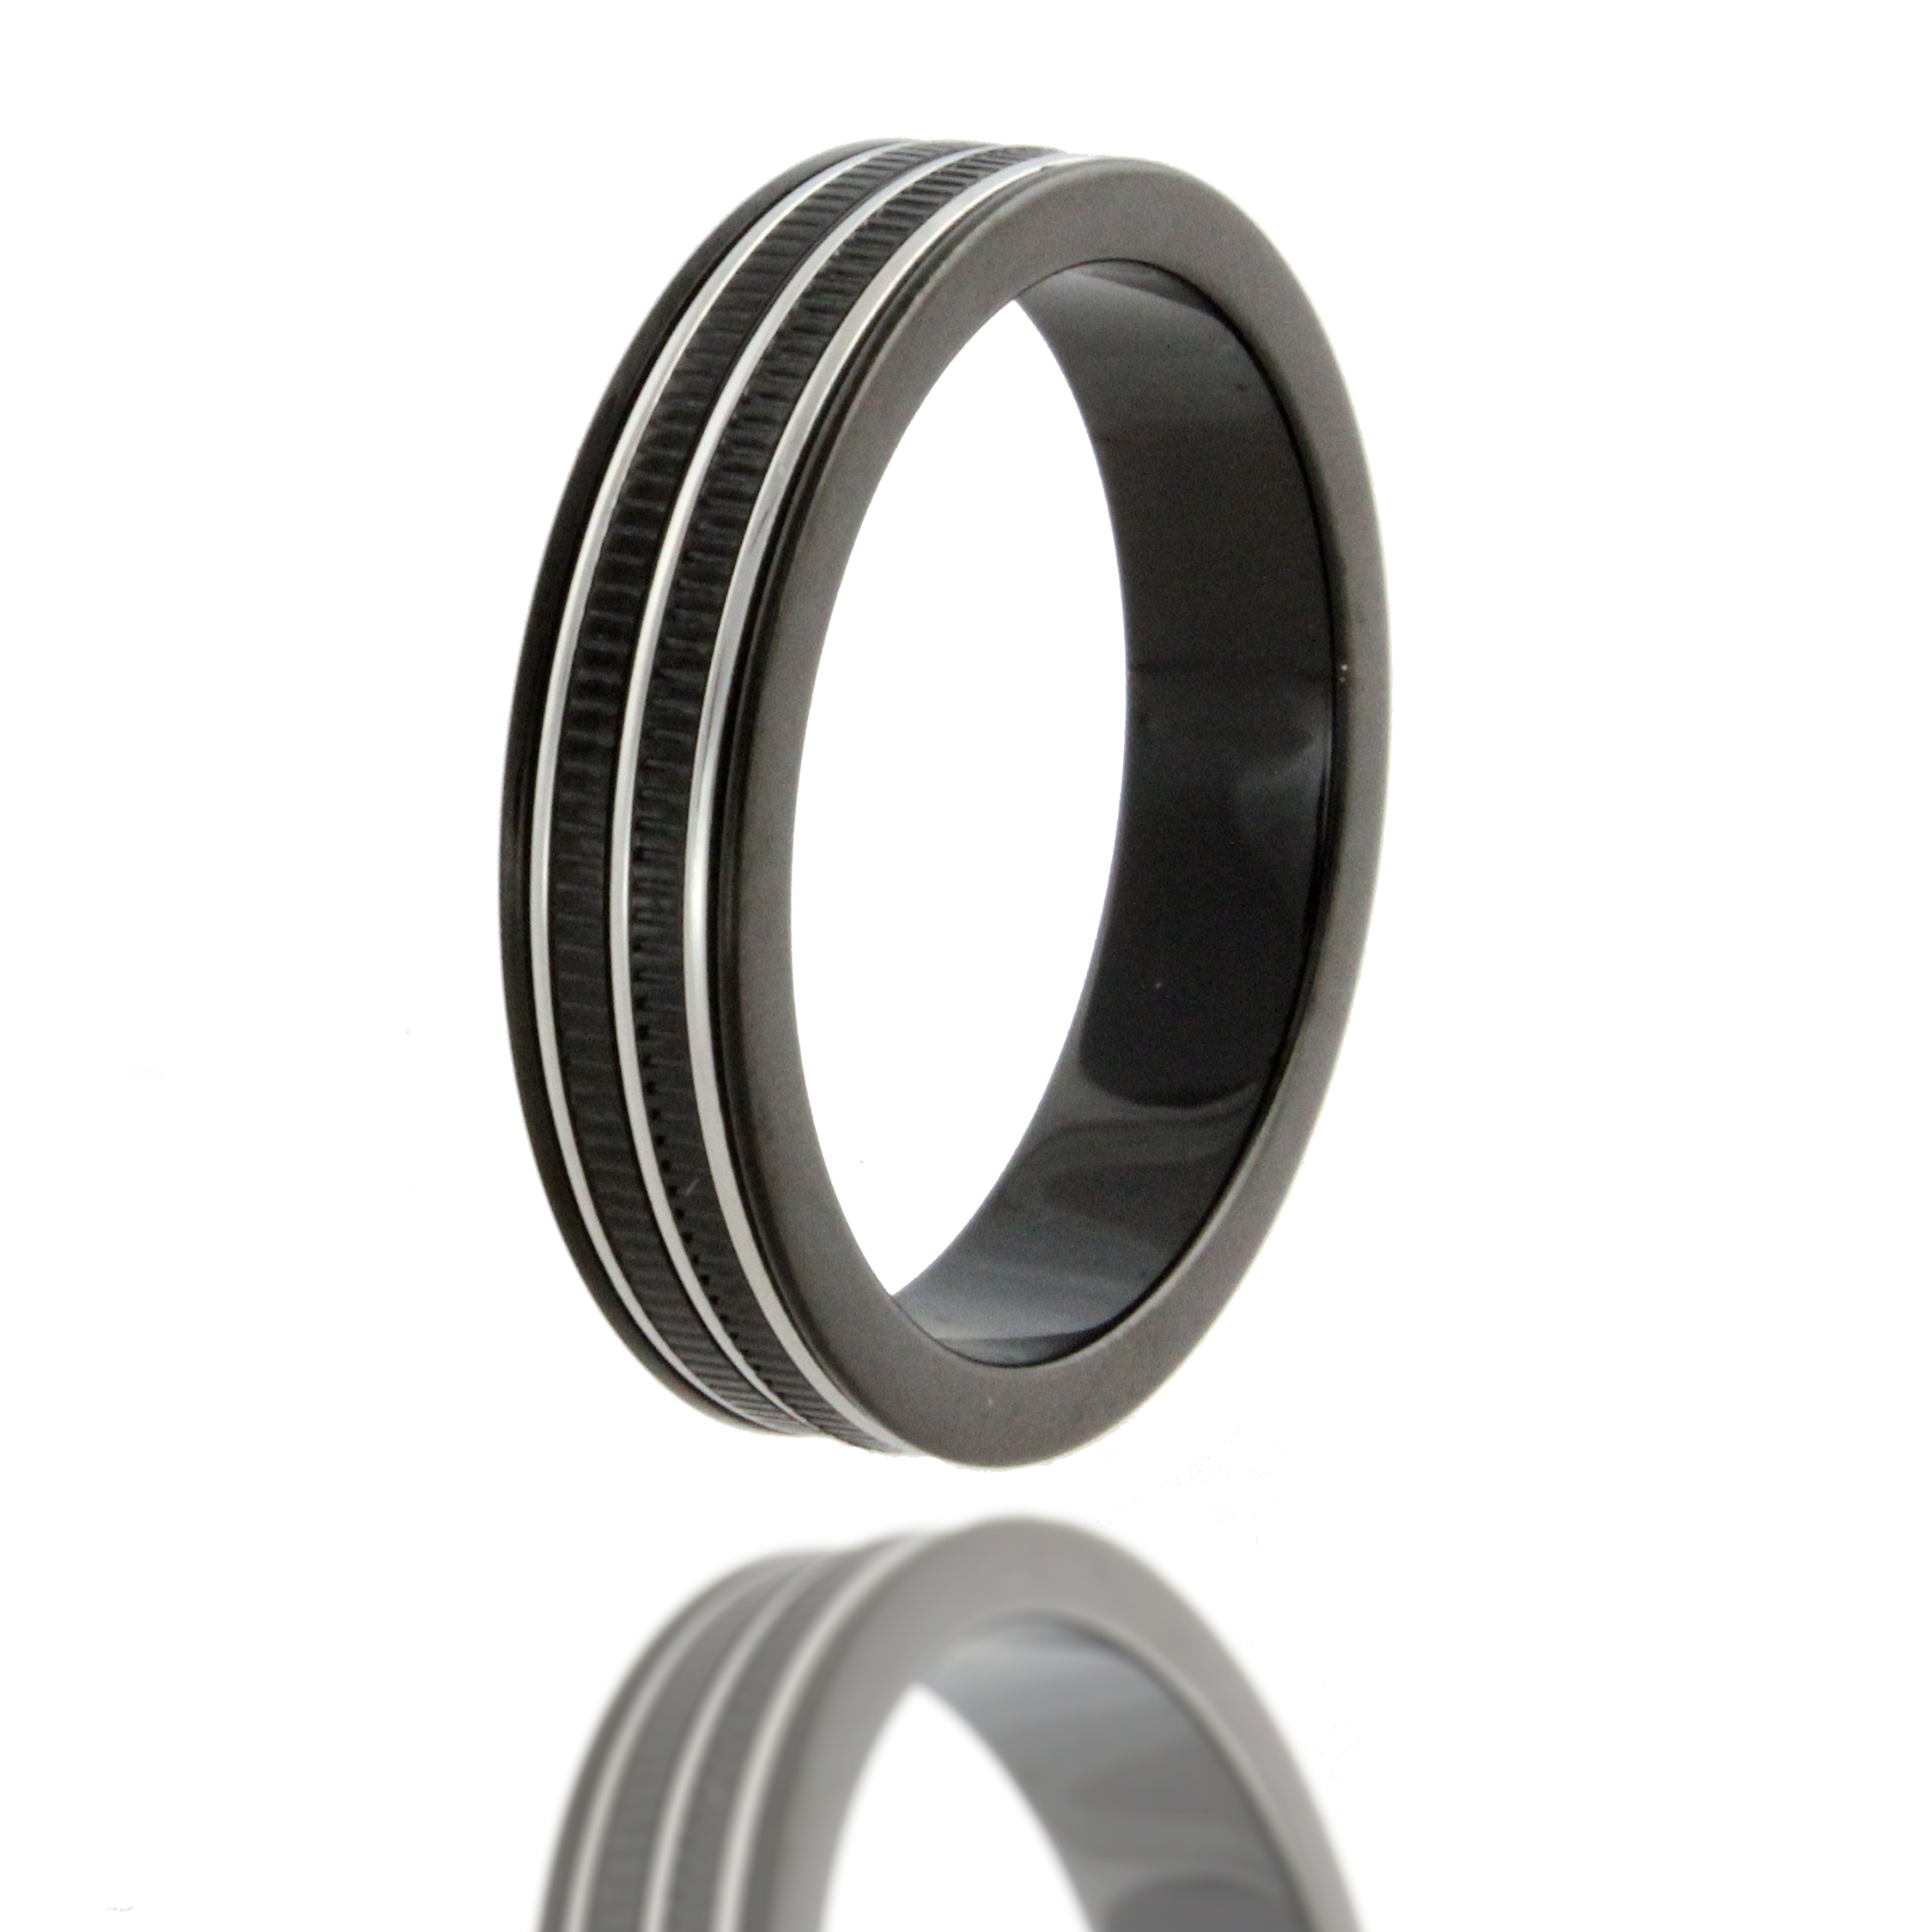 black 316l stainless steel wedding ring band size 10 25